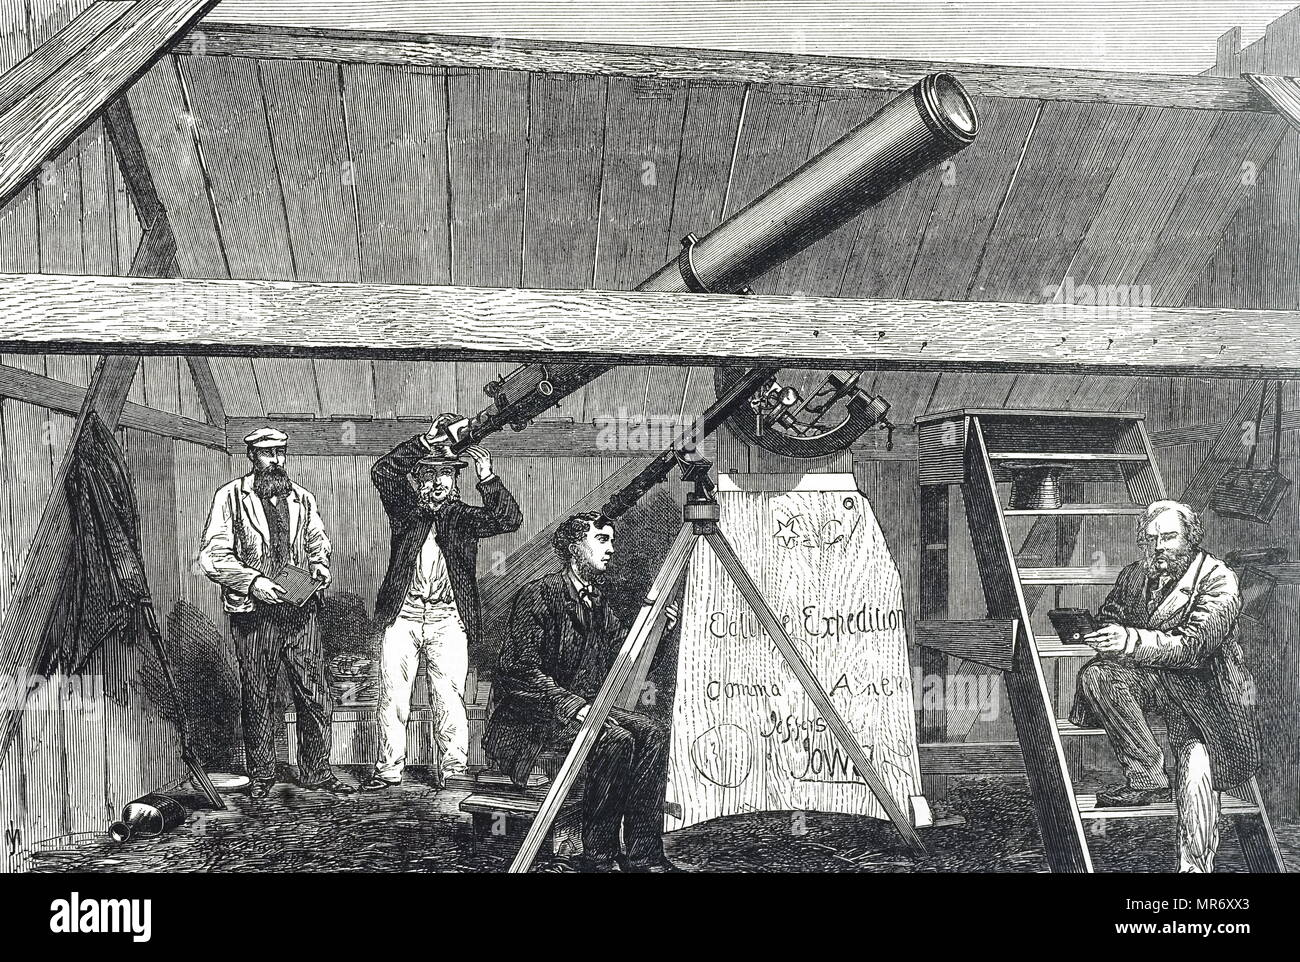 Engraving depicting the Canadian Eclipse Expedition preparing to observe the total solar eclipse in 1869 from Jefferson City, Iowa. Dated 19th century - Stock Image